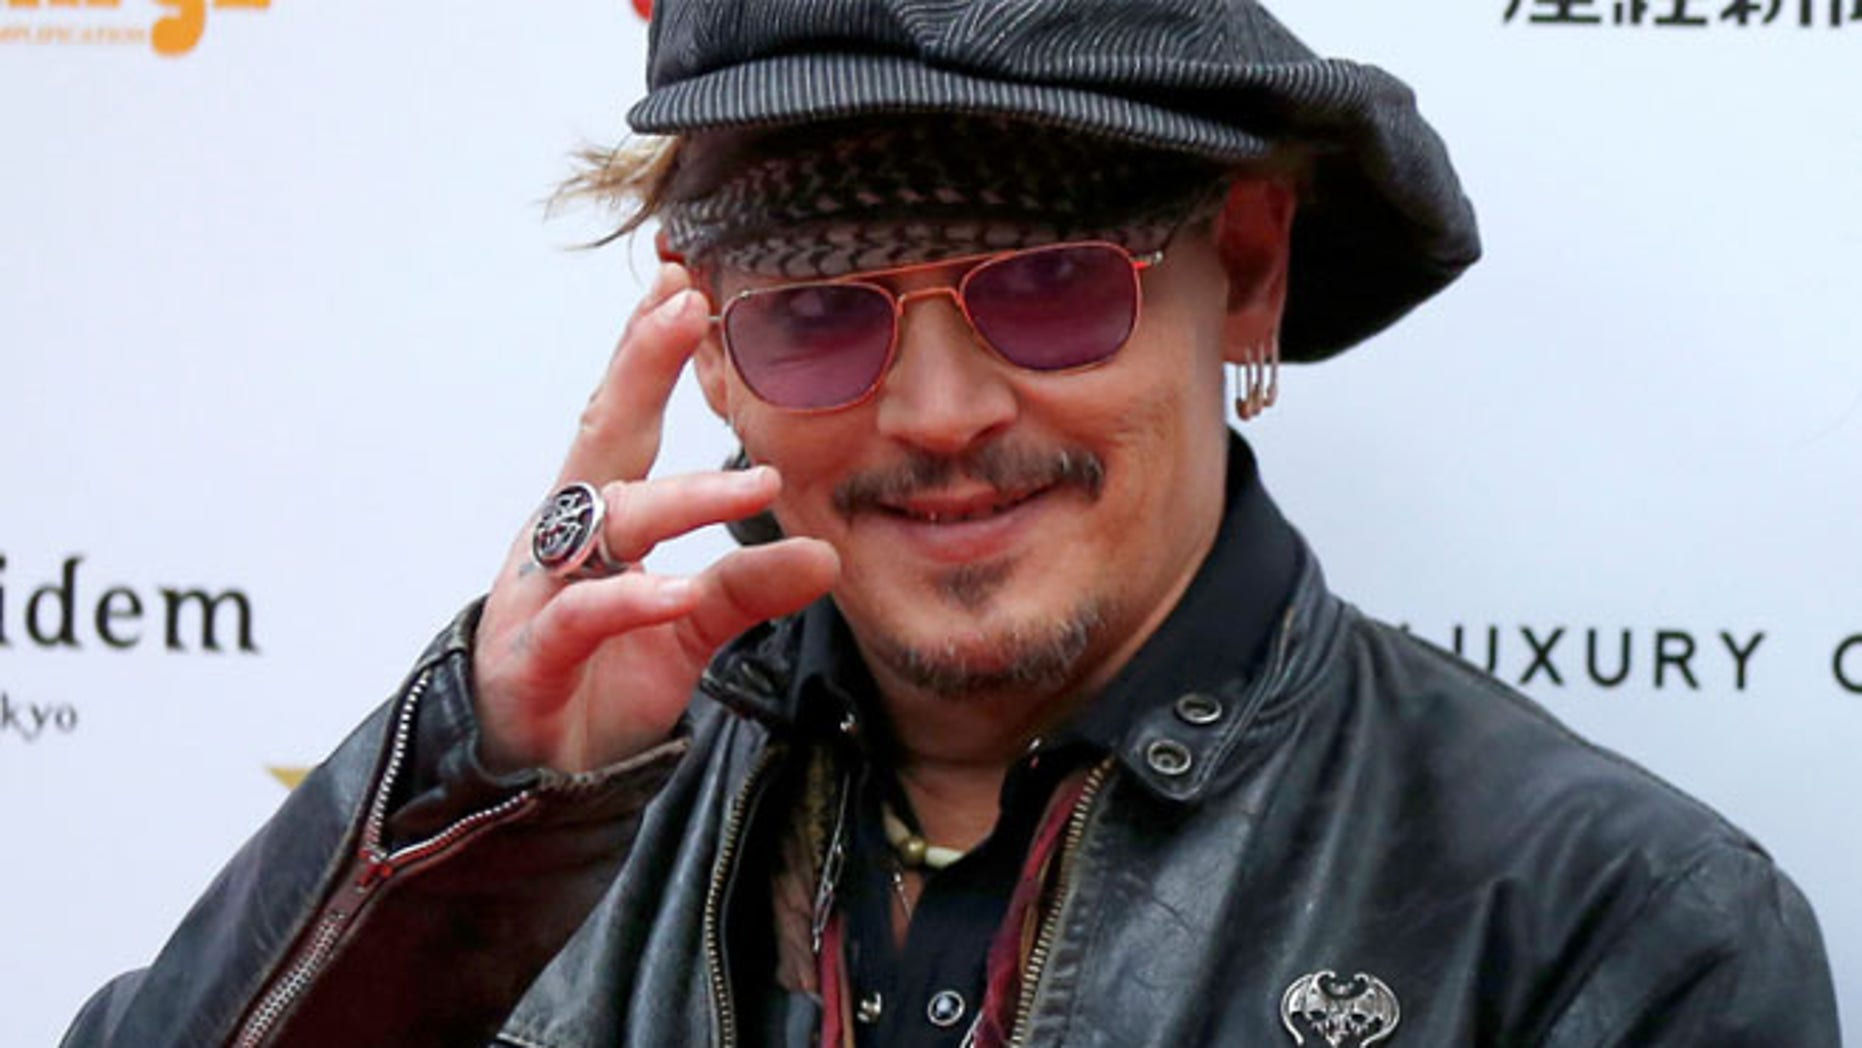 Johnny Depp's lawsuit filed in Los Angeles Superior Court against The Management Group seeks more than $25 million, alleging its owners failed to properly pay his taxes, made unauthorized loans and overpaid for security and other services.